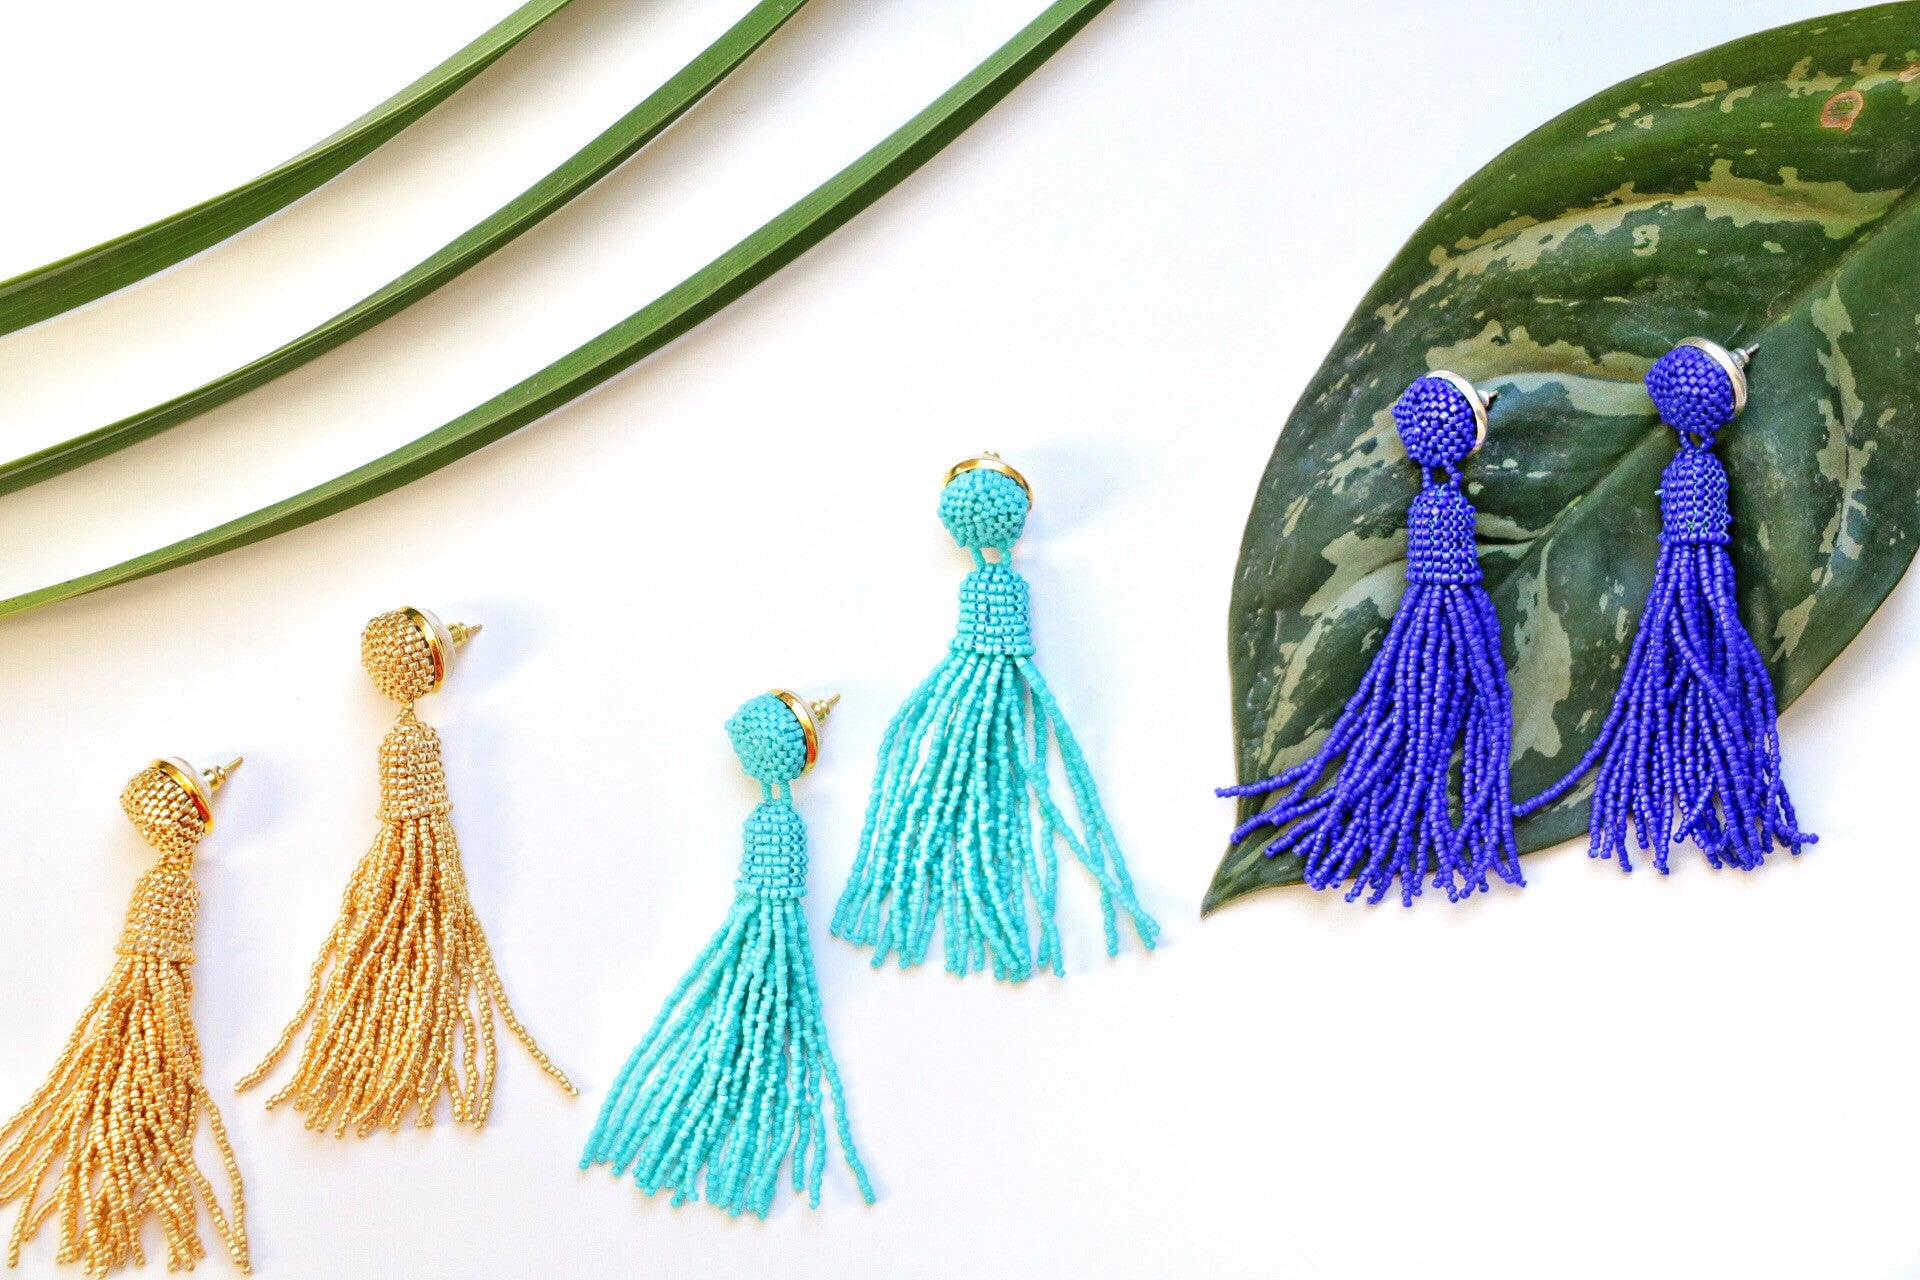 Molly Jane Designs, Blue Tassel Earrings, Earrings for Spring, Earrings to wear to a wedding, mothers day gift, bridesmaid gift, prom style, something blue, warm weather accessories